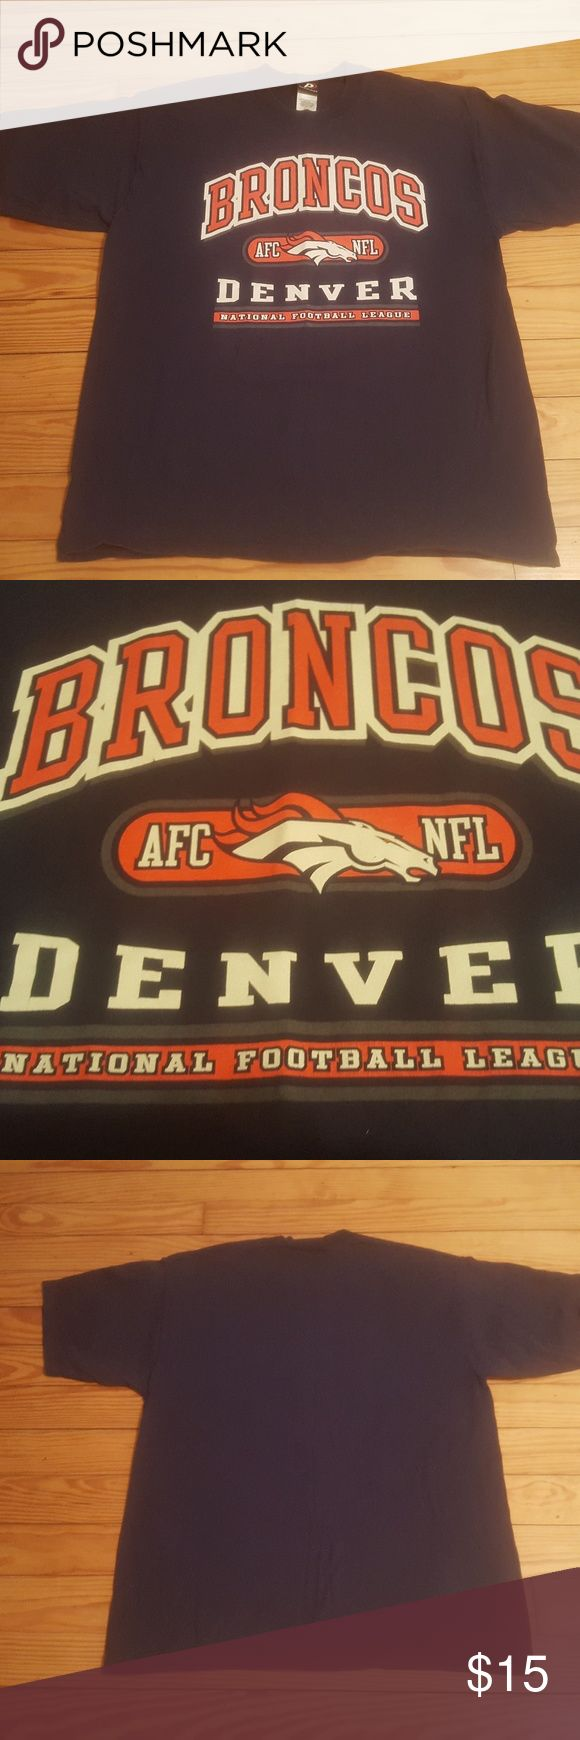 Denver Broncos mens short sleeve t-shirt,XL Denver Broncos mens short sleeve t-shirt size XL.Pre-owned in still in new condition from a clean and smoke-free environment. Shirts Tees - Short Sleeve